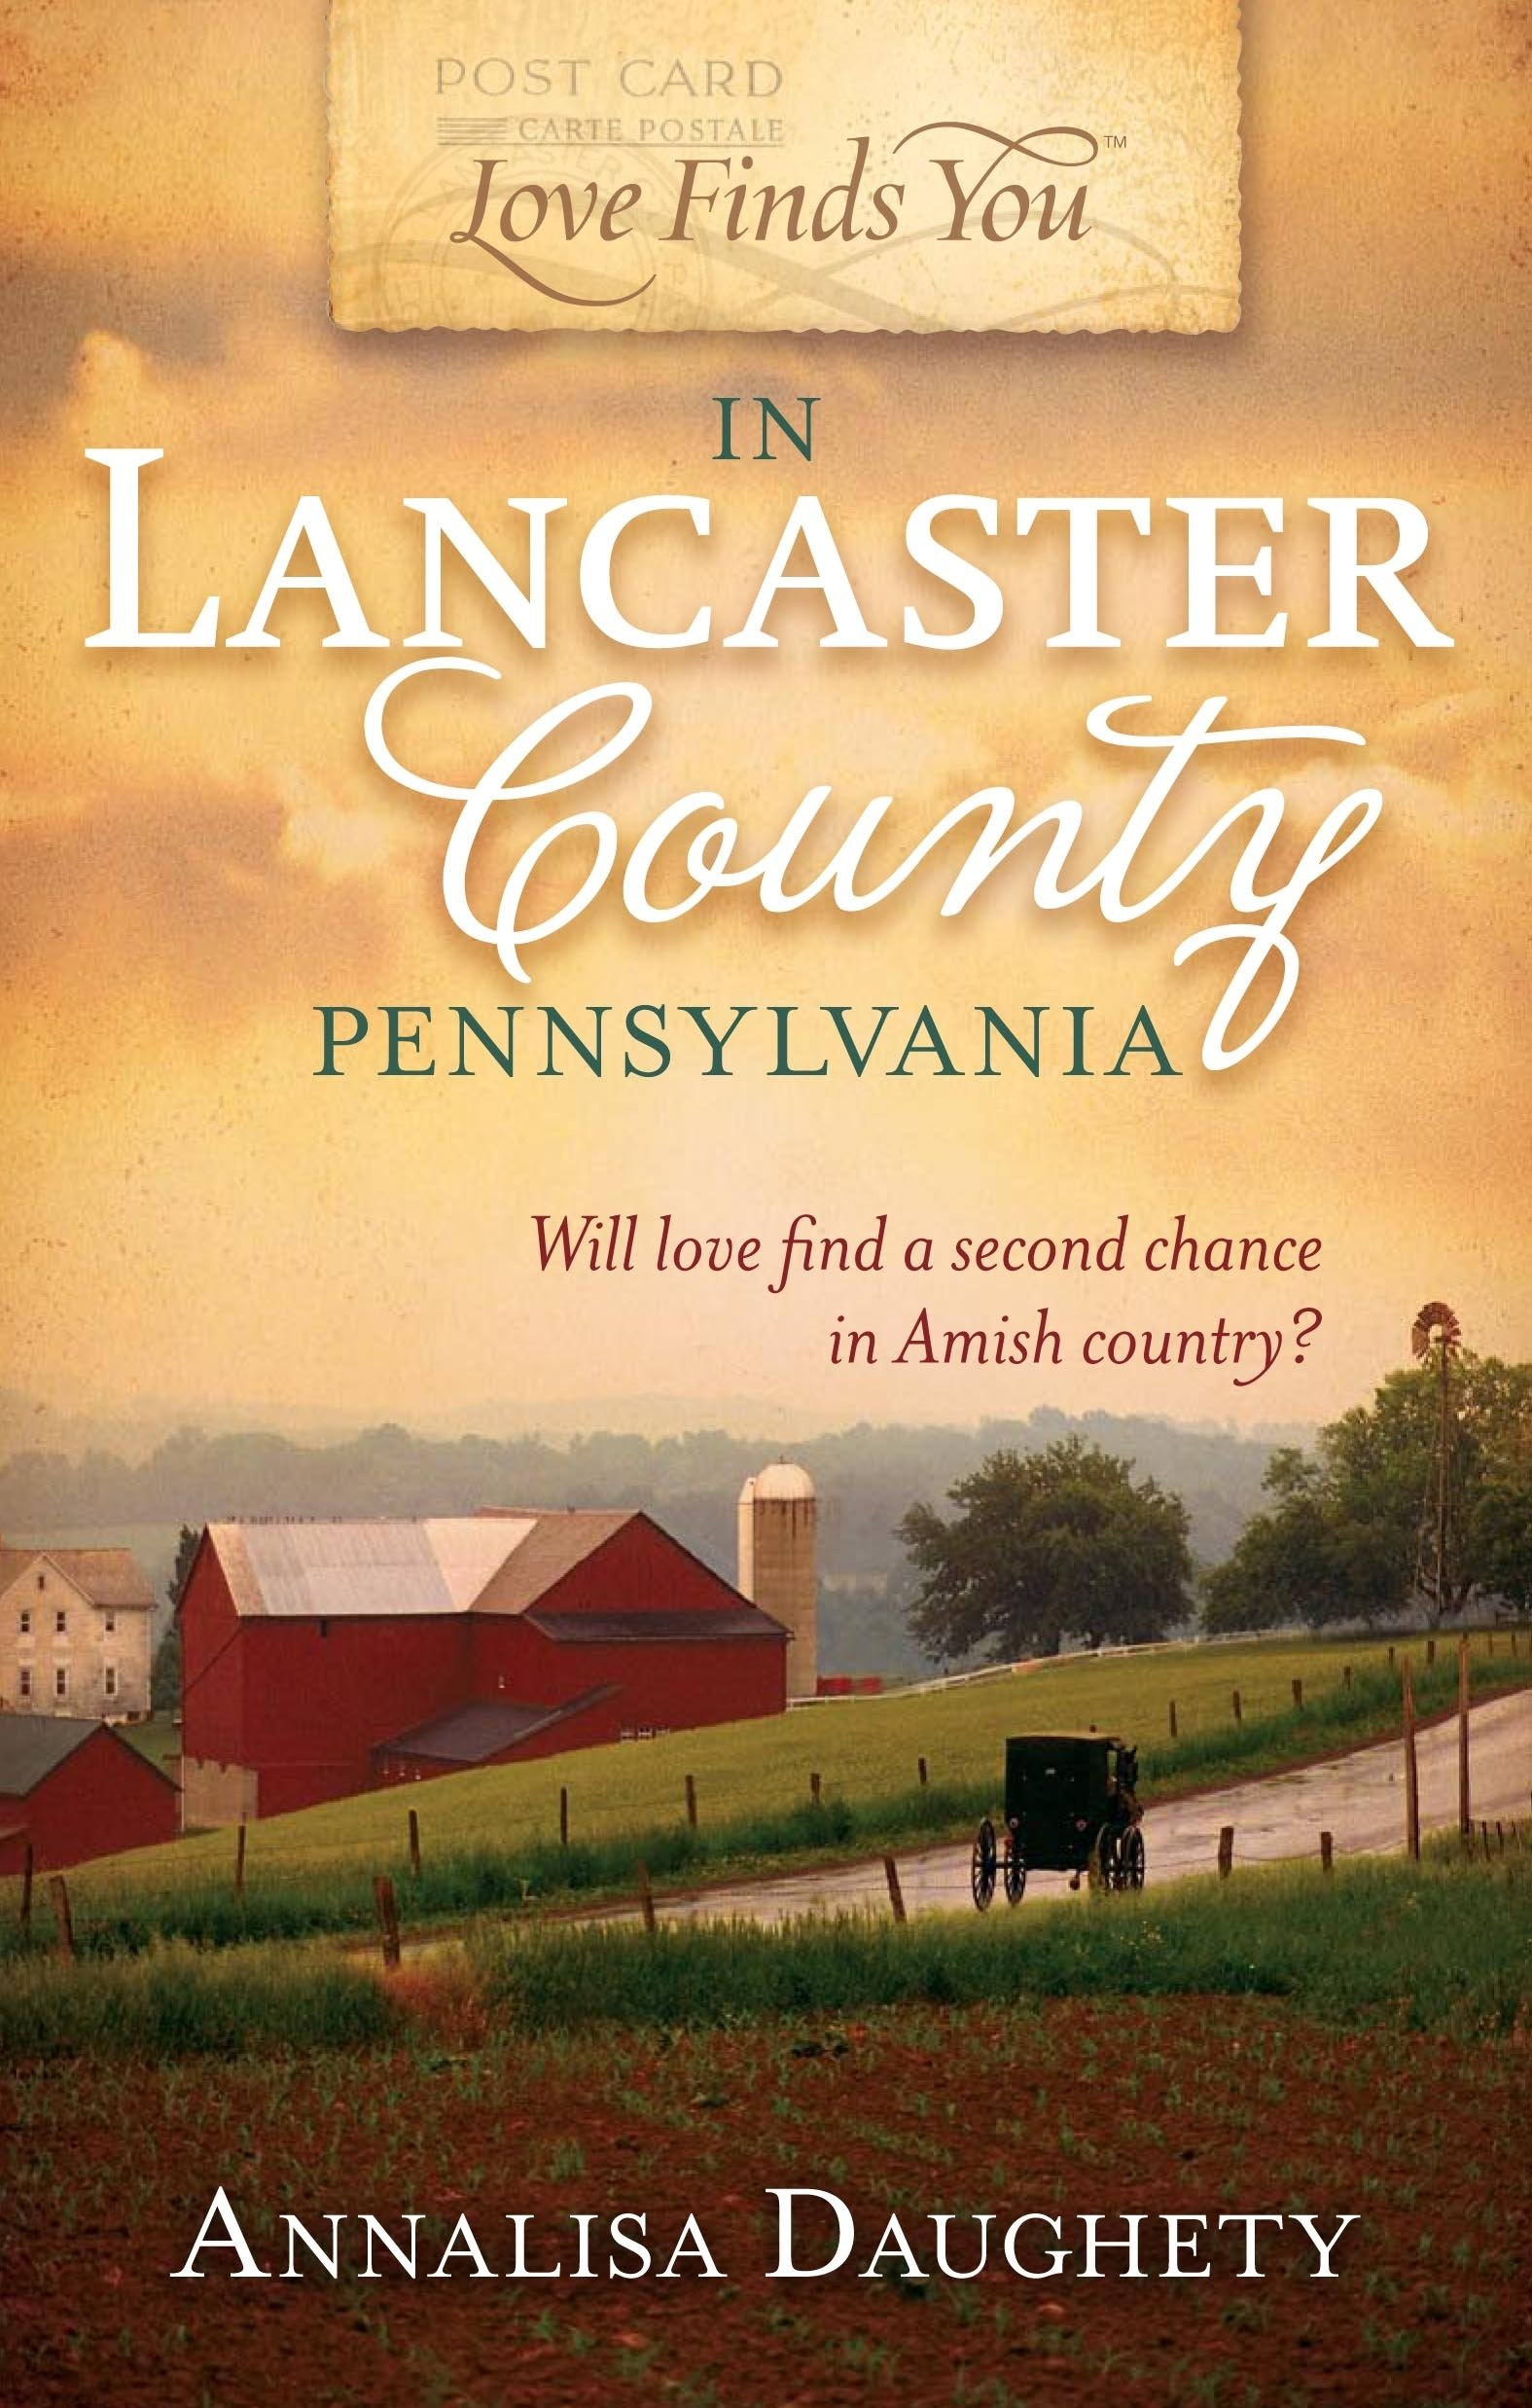 Love Finds You in Lancaster County, Pennsylvania: Annalisa